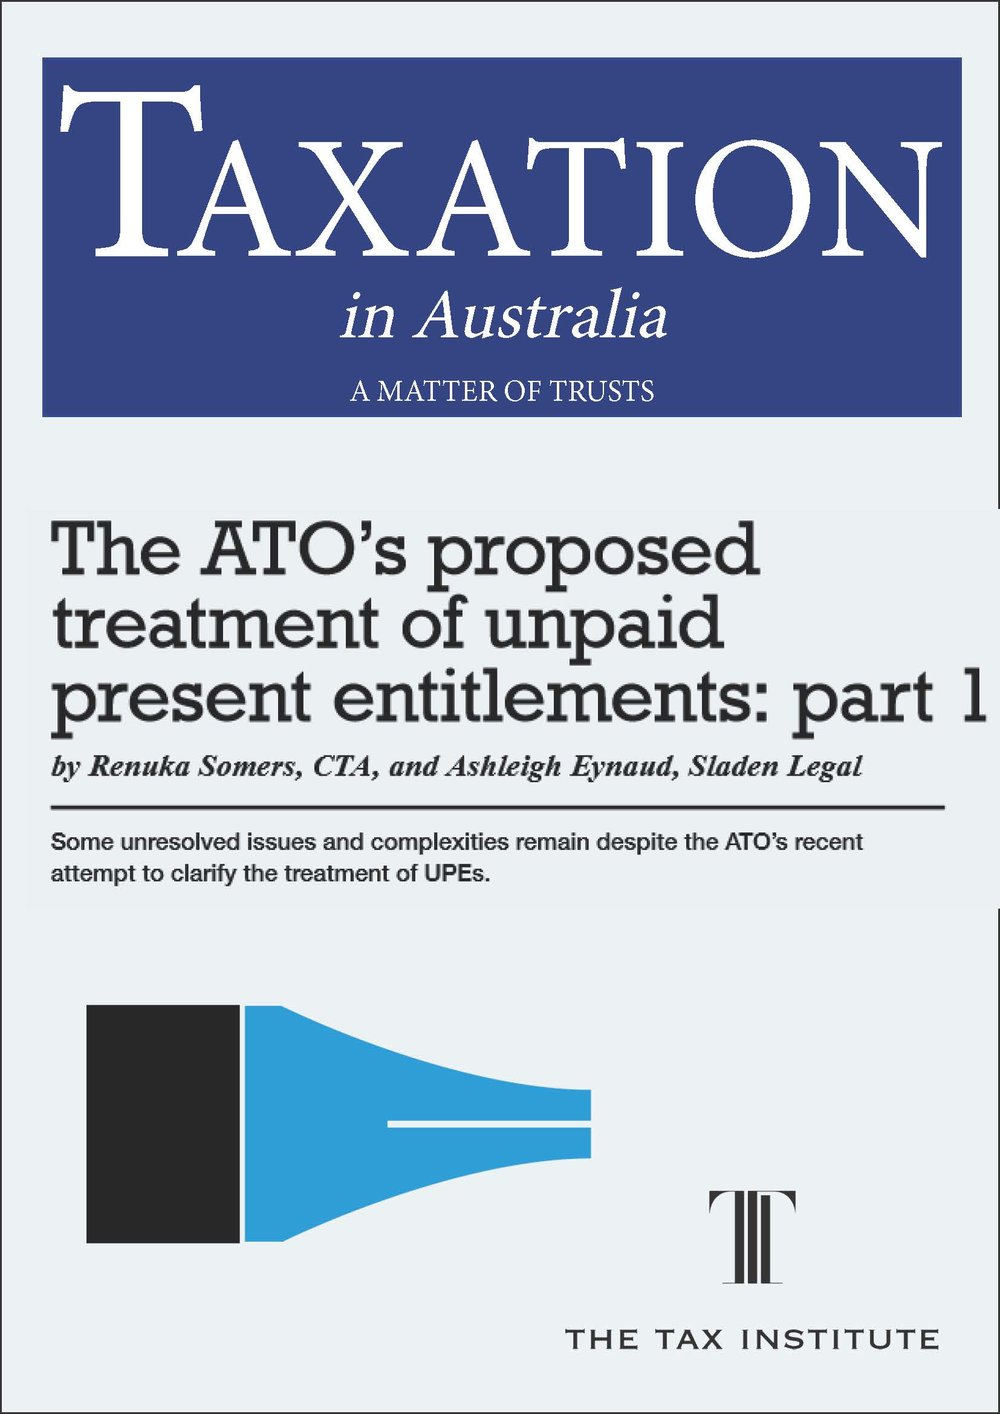 The ATO's proposed treatment of unpaid present entitlements: part 1 06 November 2015